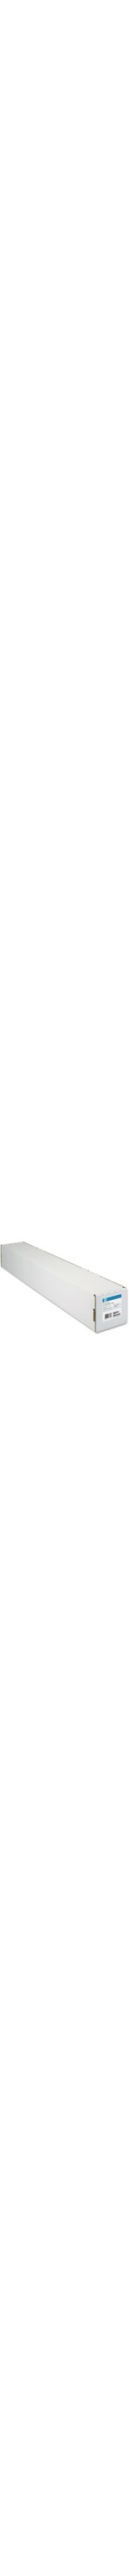 HP Everyday Q8916A Photo Paper - 610 mm x 30.48 m - Glossy